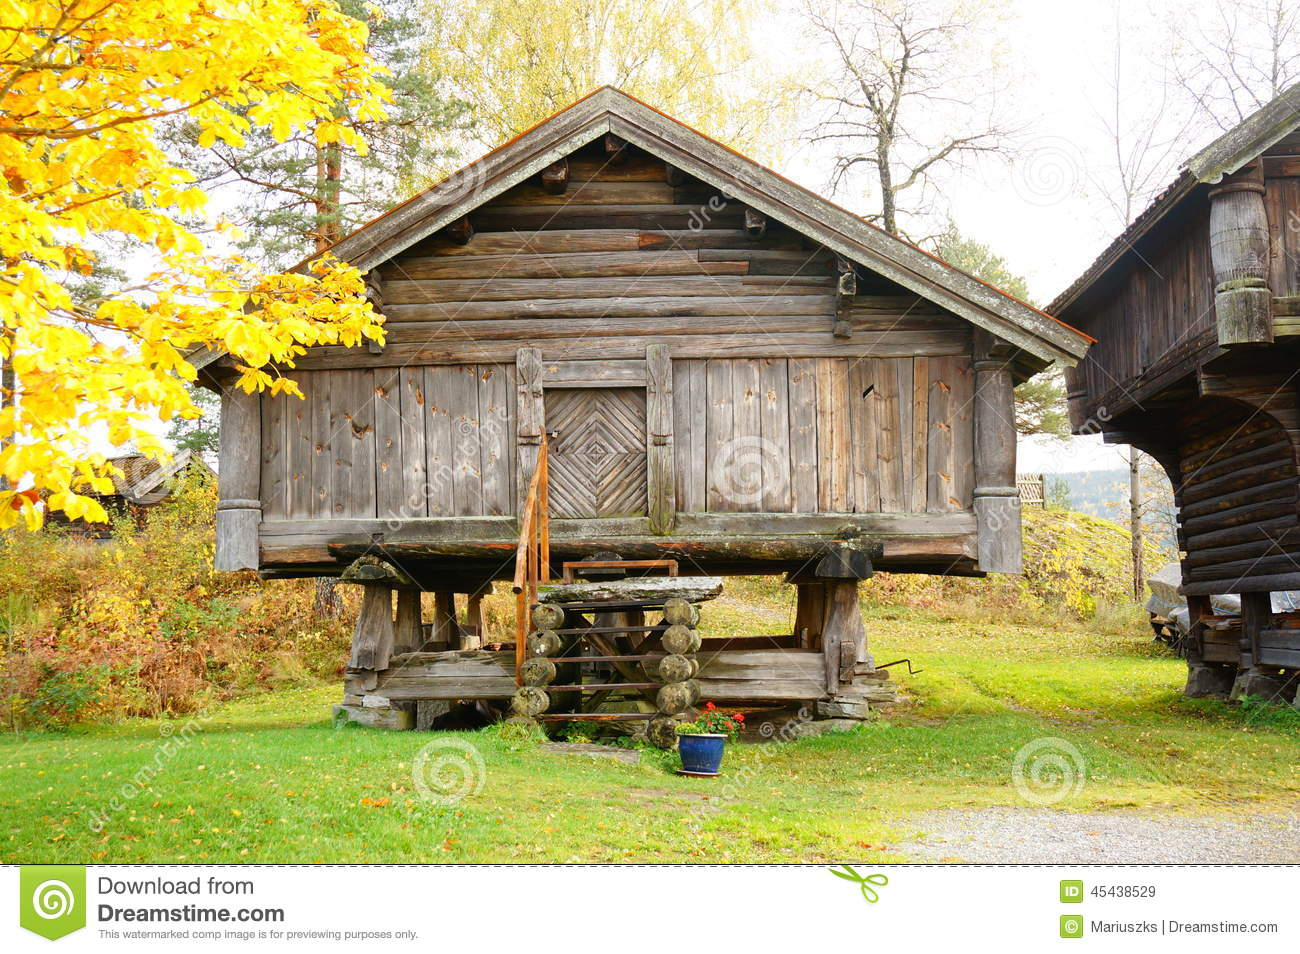 Old Norwegian Wooden Agricultural Building Stock Image - Image: 45438529